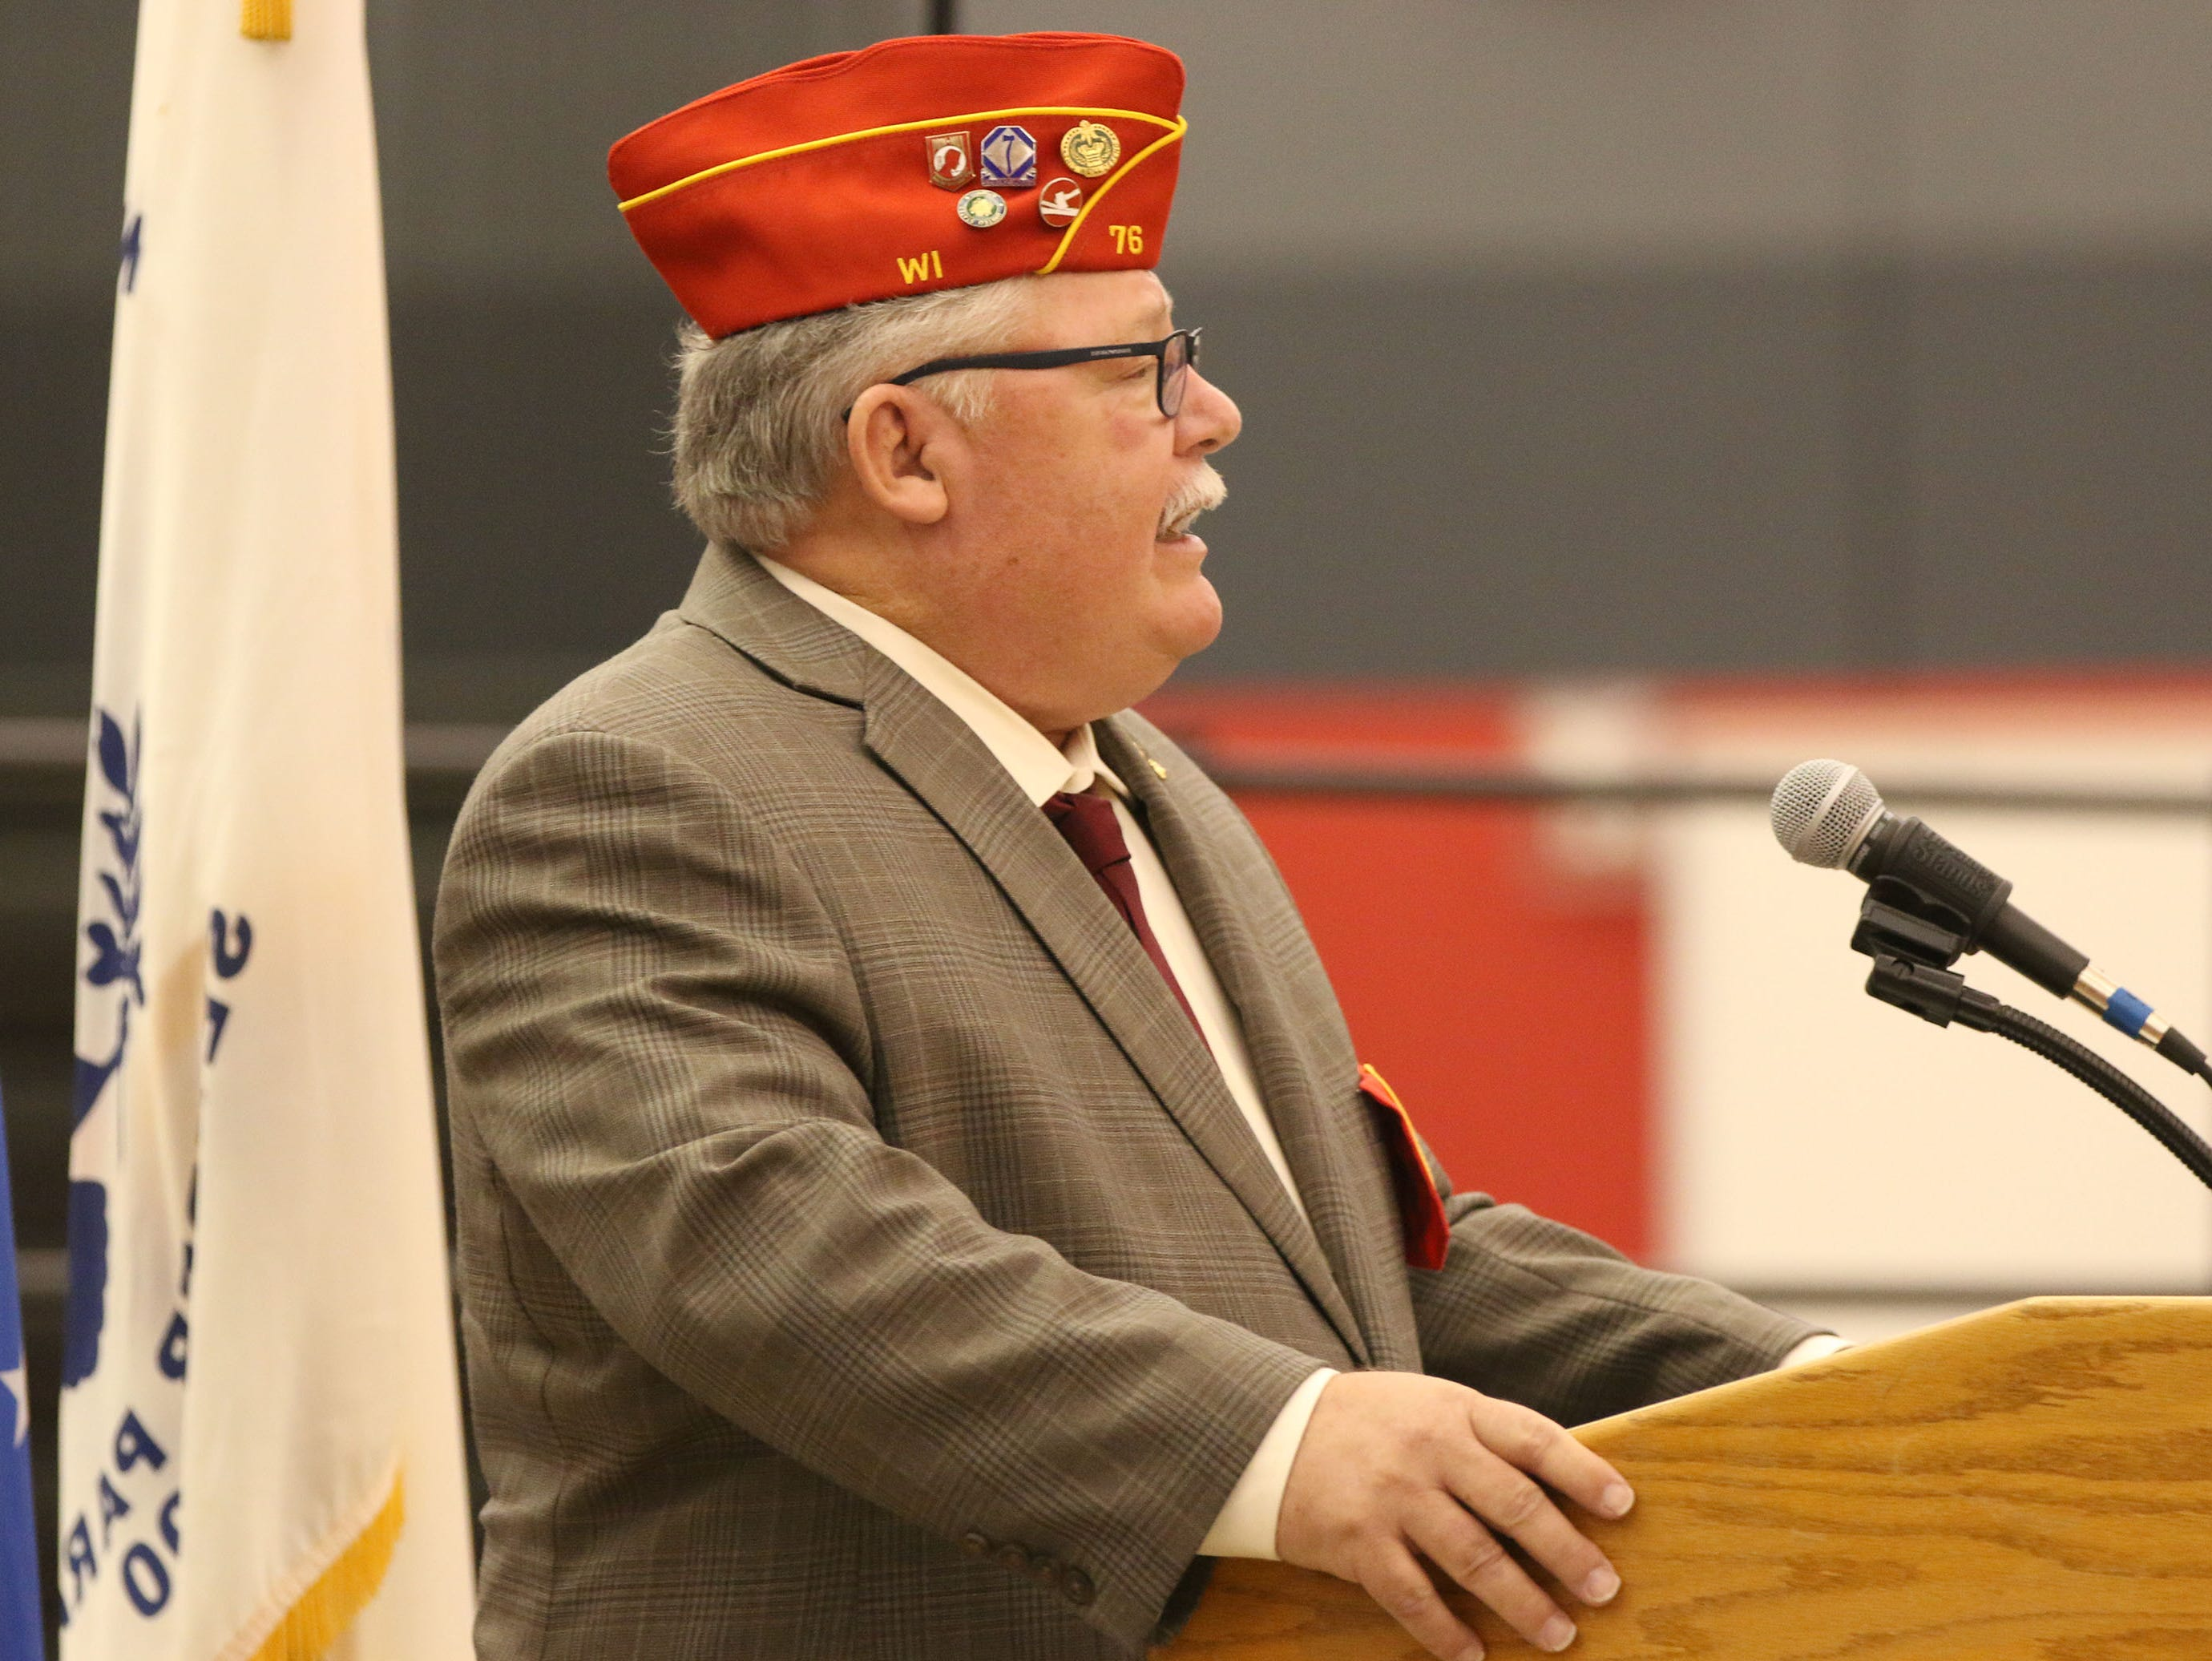 Mike Liebelt of the Retired Enlisted Association, Chapter 76, of Sheboygan speaks during the Veterans Day Program held at Sheboygan South High School, Friday, November 9, 2018, in Sheboygan, Wis.